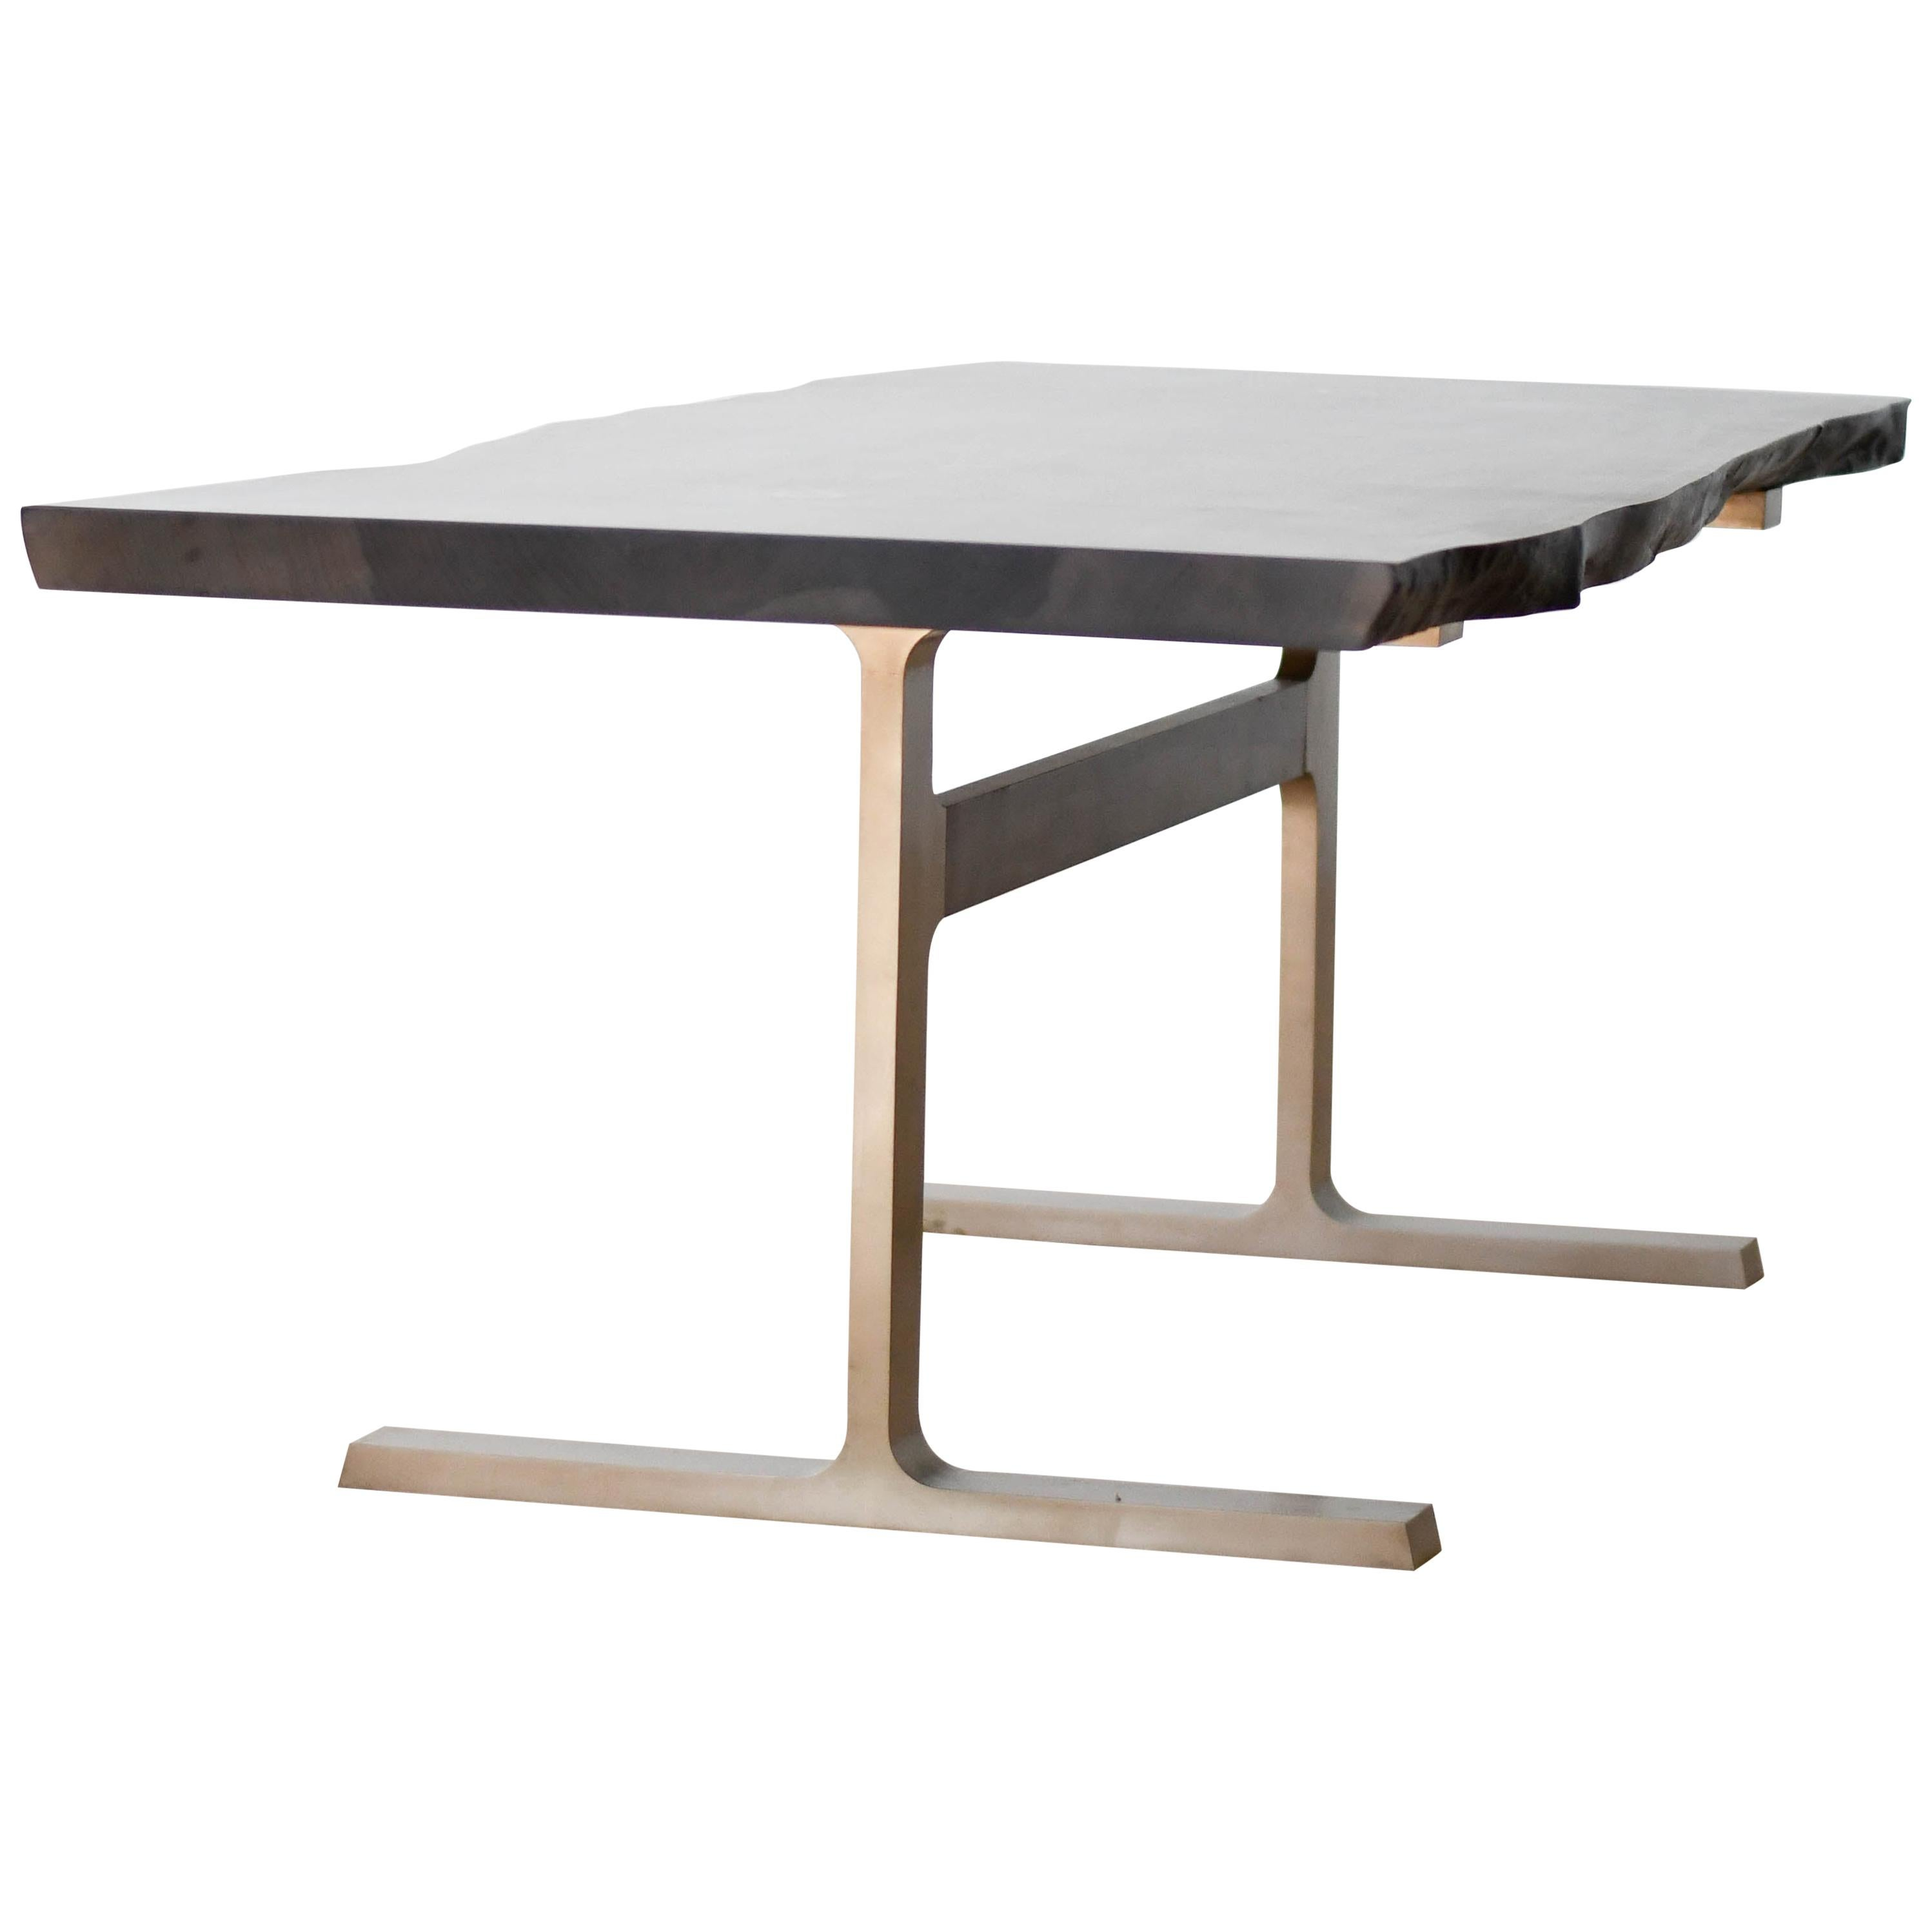 Shaker Table with Elliptical Top Hand Carved in Oxidized Maple & Black Cast Base